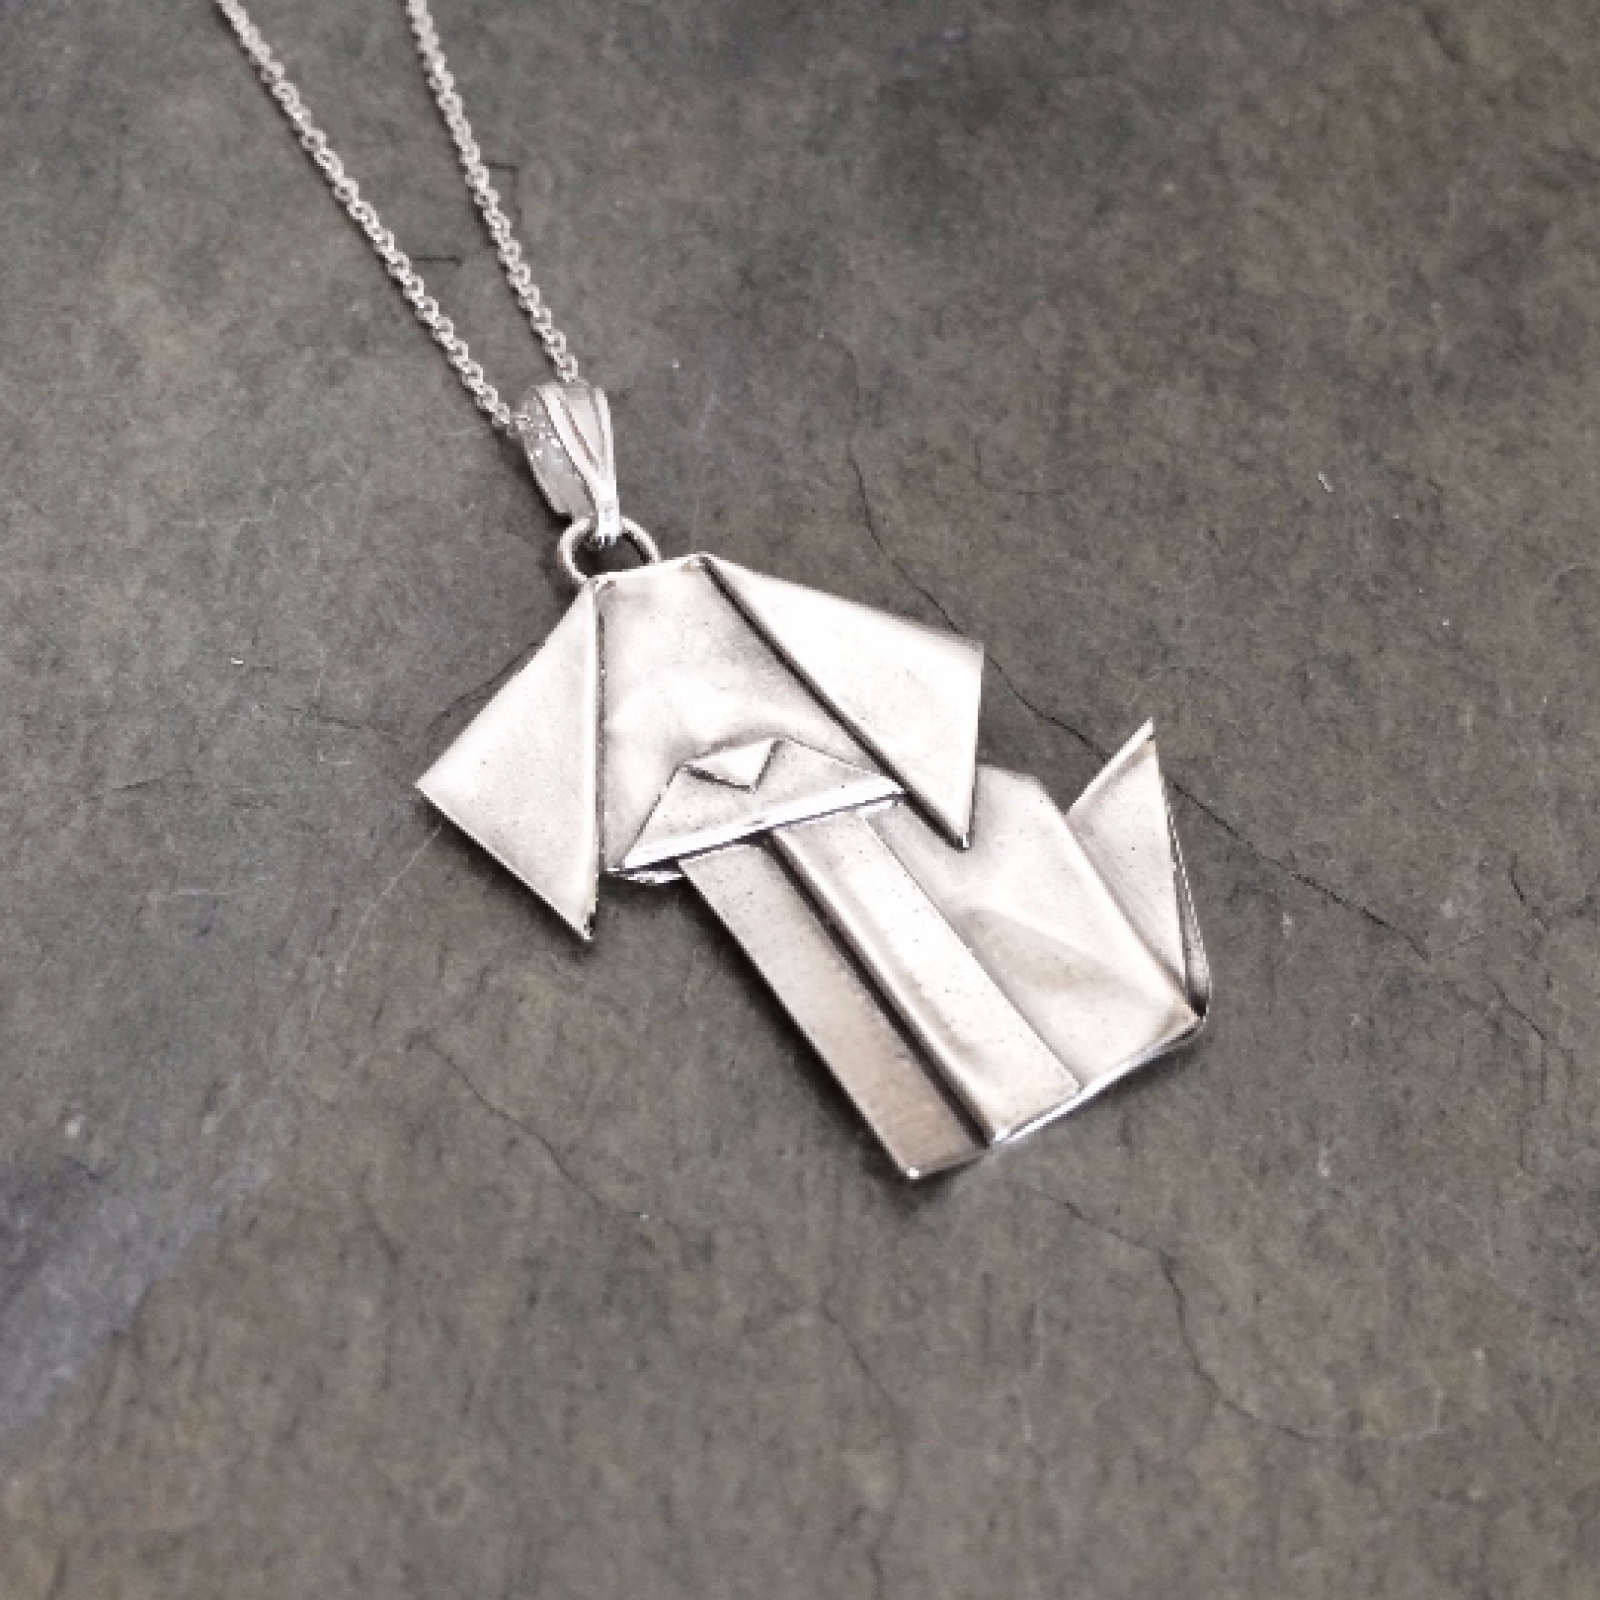 silver origami dog pendant by allegro arts | Allegro Arts - photo#28